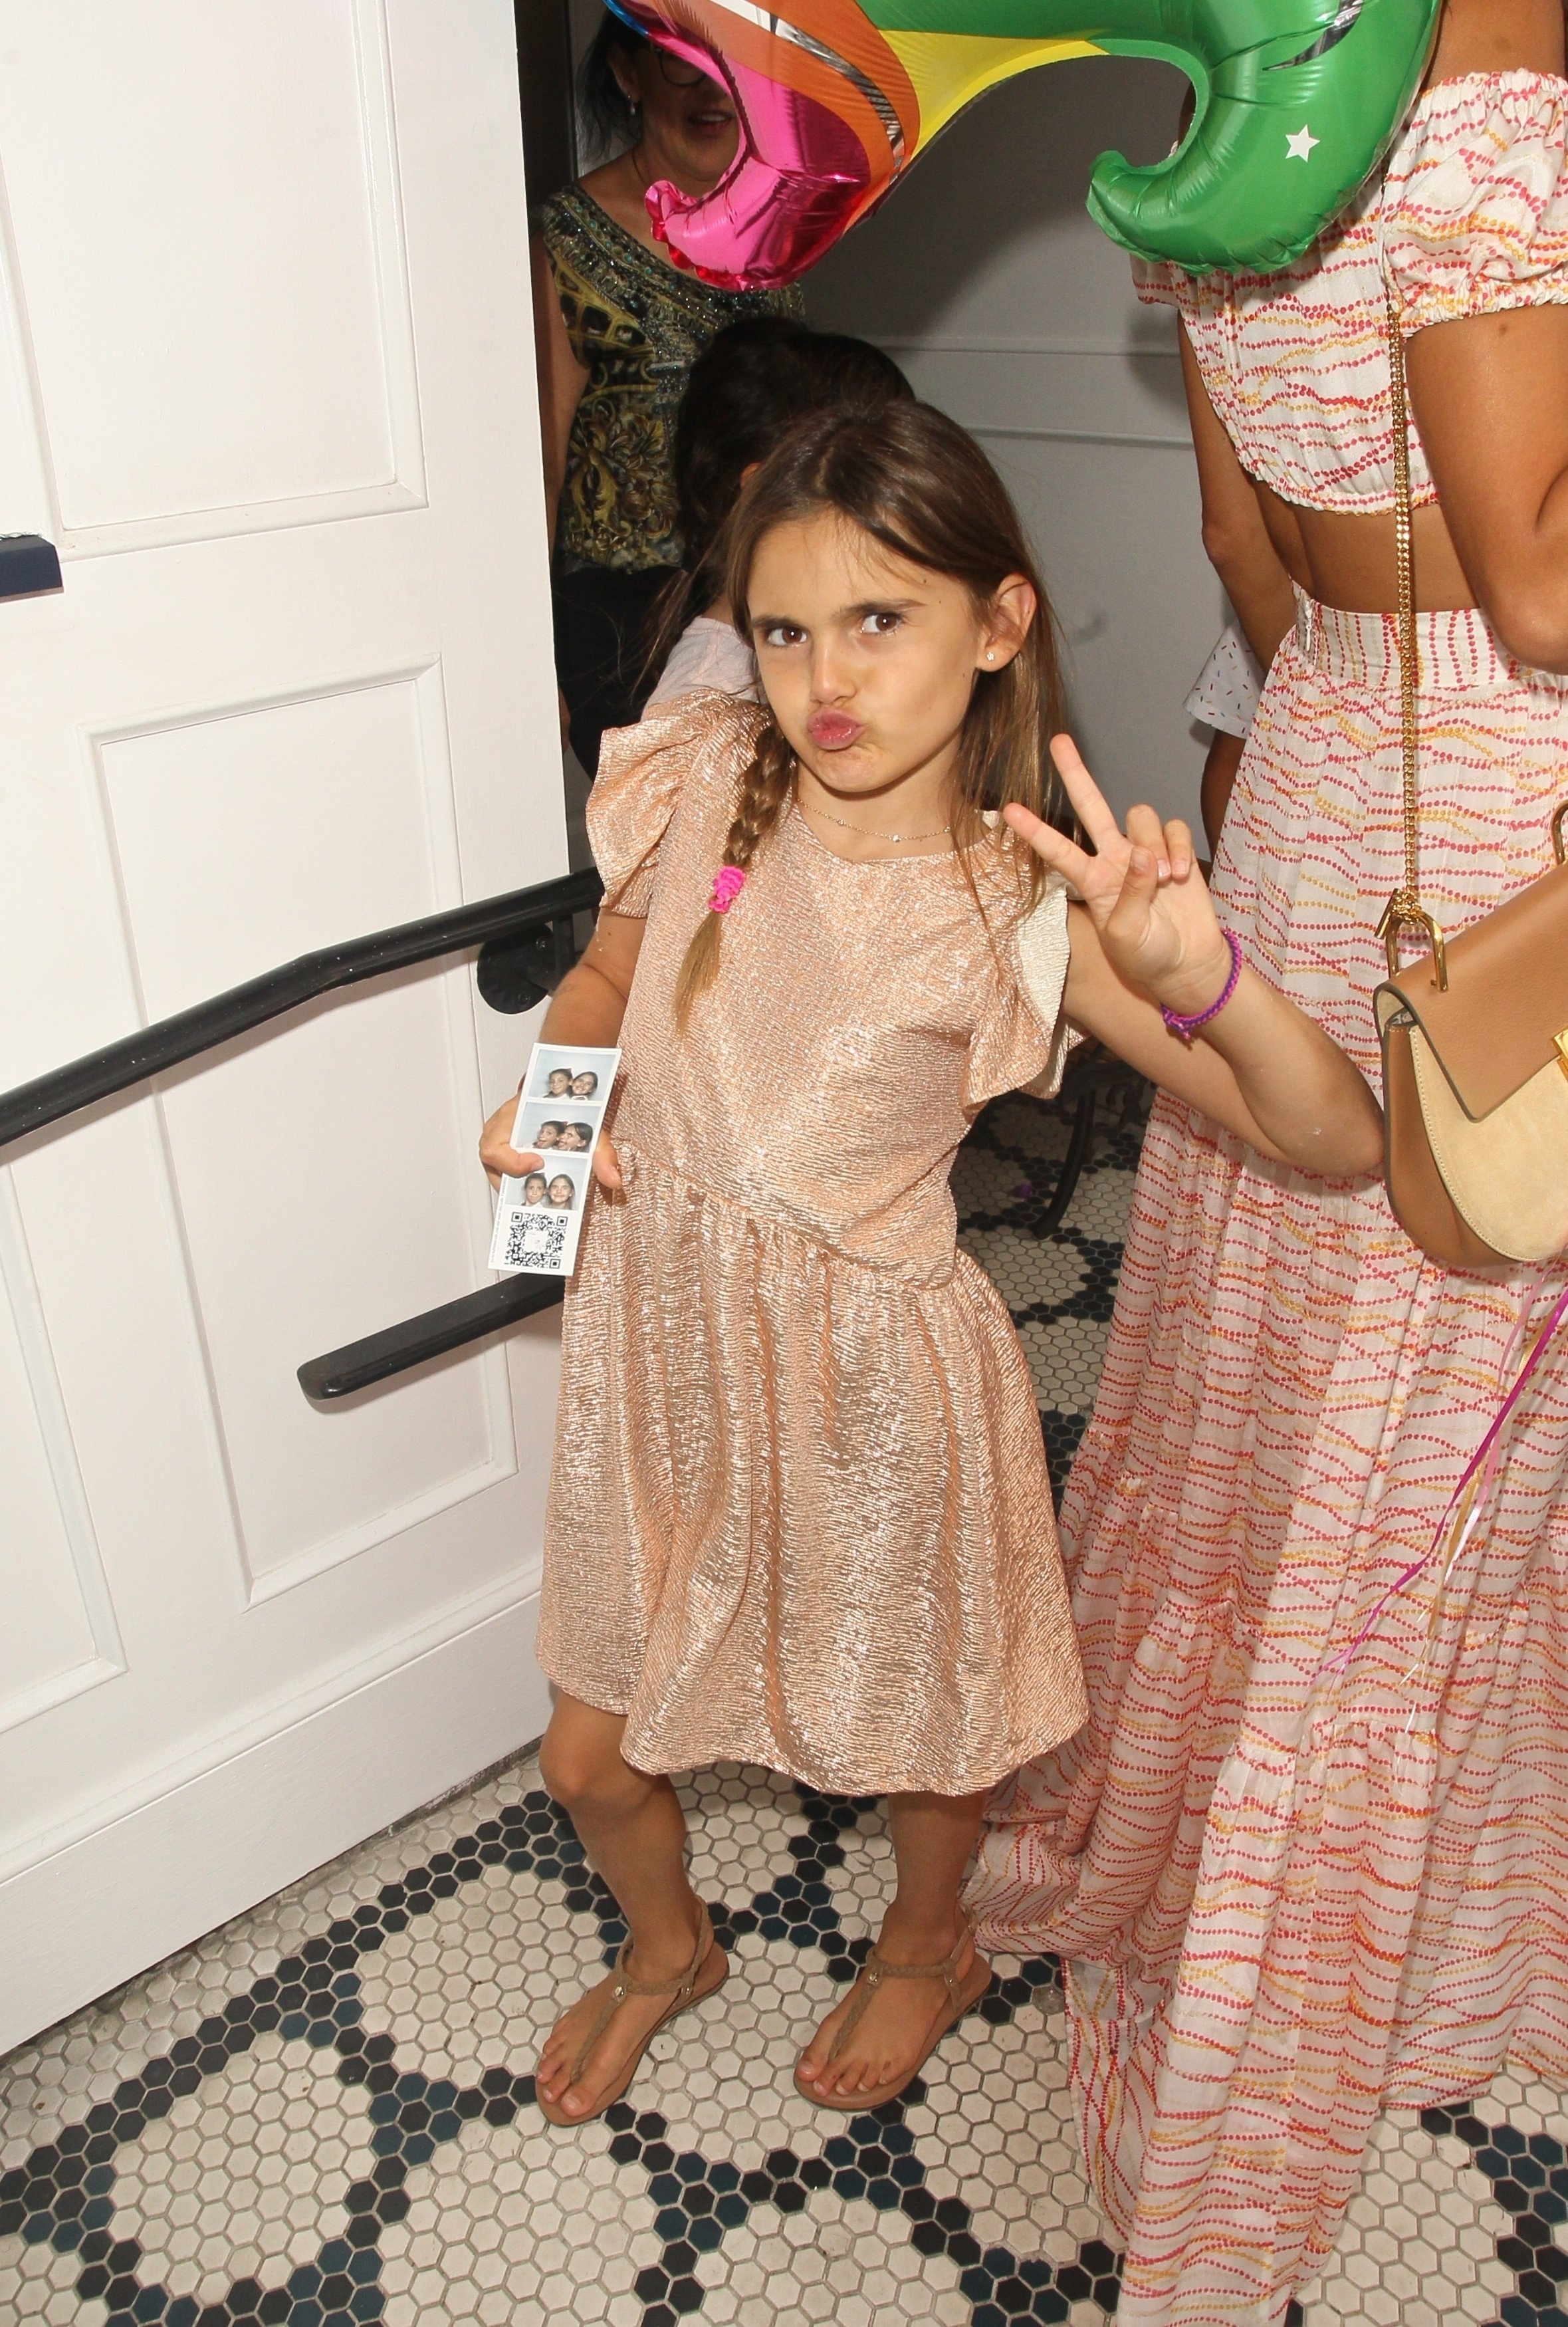 West Hollywood, CA  - Alessandra Ambrosio and Anja arrive at Au Fudge for her 9th birthday party. Alessandra looks great as she shows off the tanned and toned skin while walking with her birthday girl.  Pictured: Alessandra Ambrosio  BACKGRID USA 24 AUGUST 2017   USA: +1 310 798 9111 / usasales@backgrid.com  UK: +44 208 344 2007 / uksales@backgrid.com  *UK Clients - Pictures Containing Children Please Pixelate Face Prior To Publication*, Image: 346406695, License: Rights-managed, Restrictions: , Model Release: no, Credit line: Profimedia, AKM-GSI